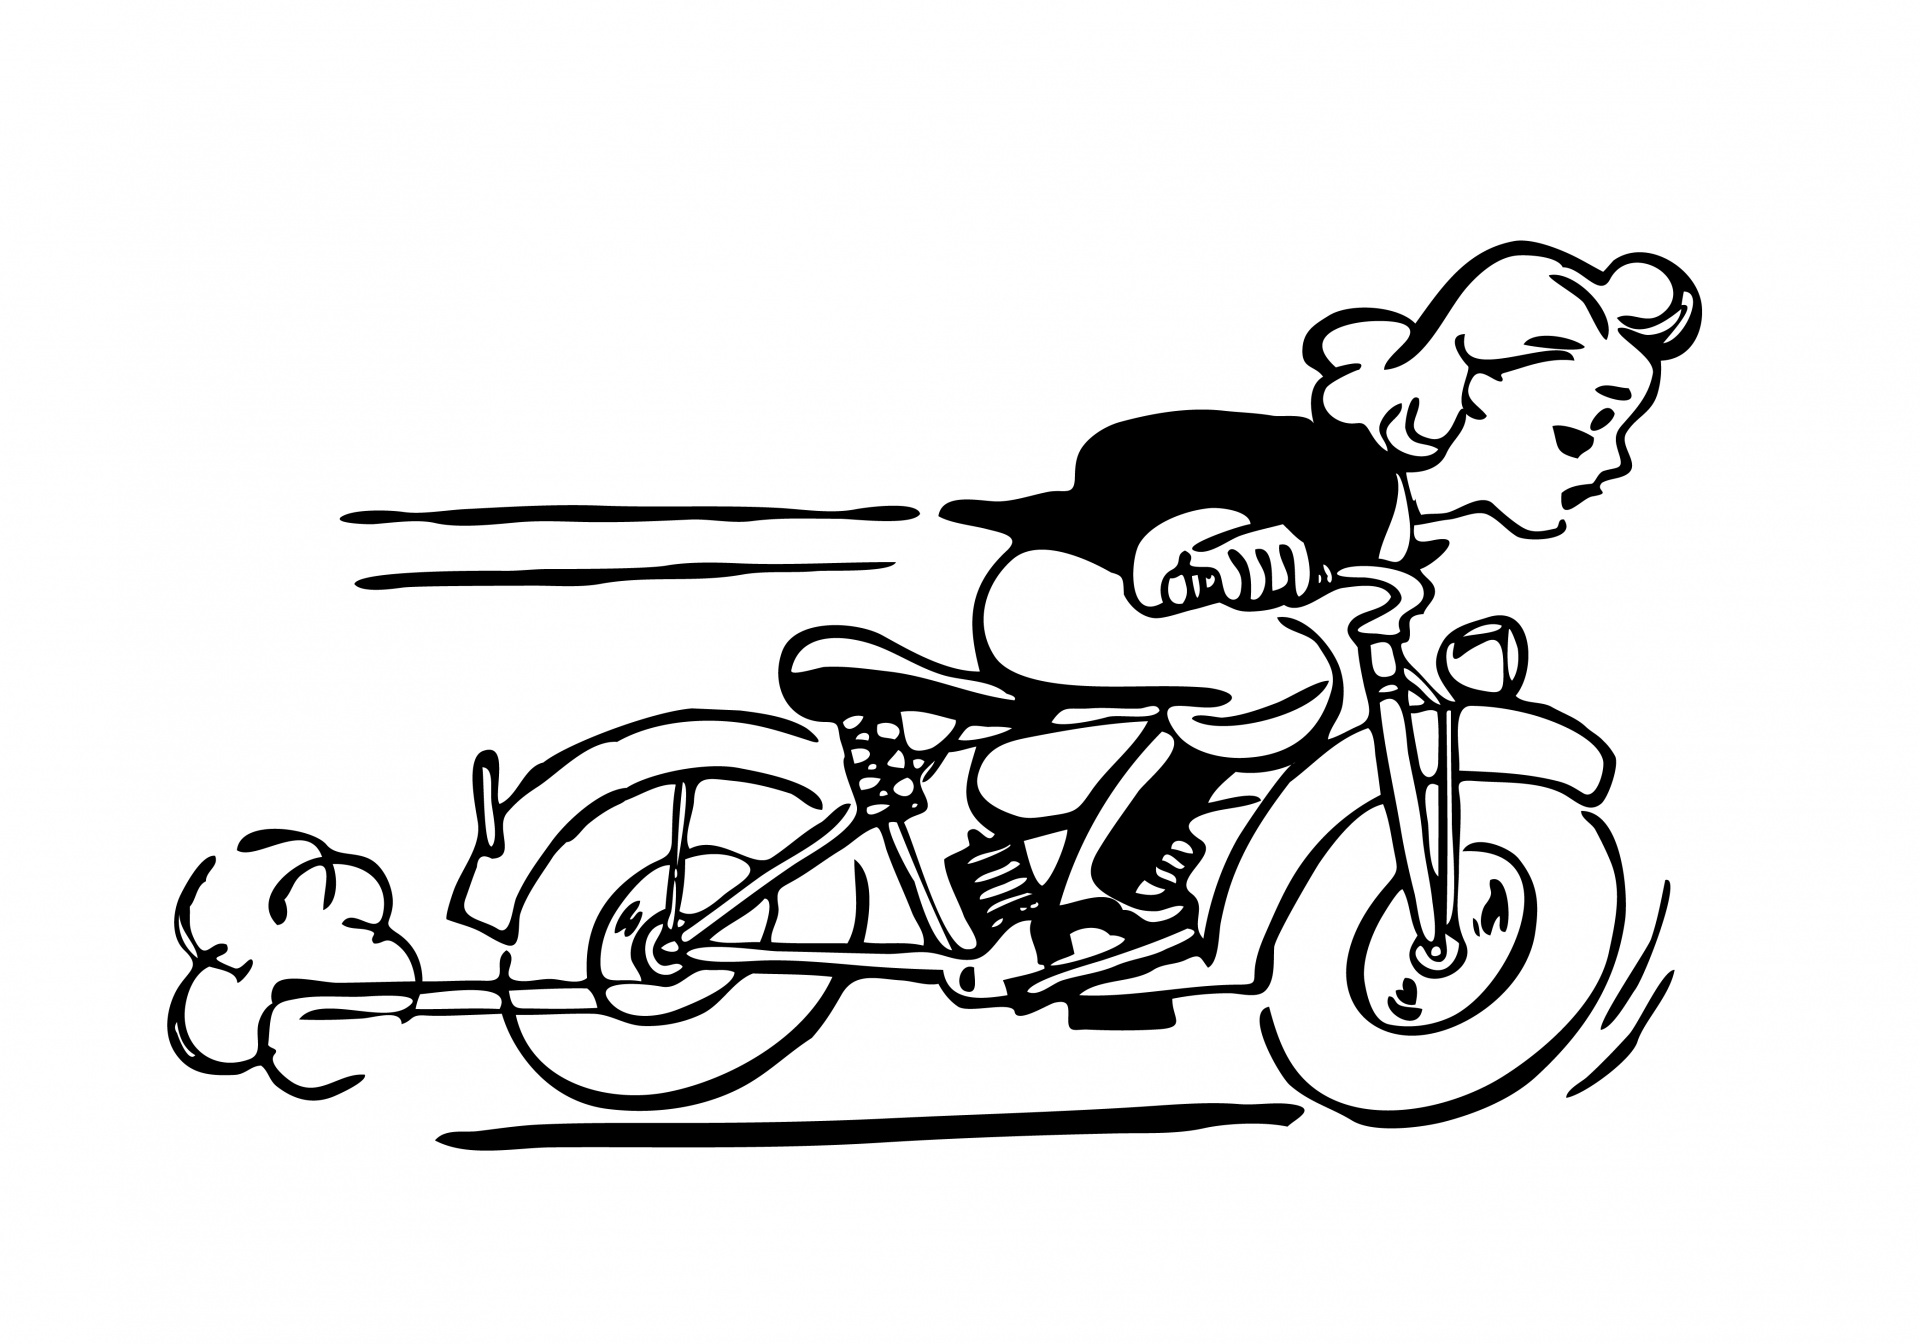 Motorcycle Silhouette Vector Free Download At Getdrawings